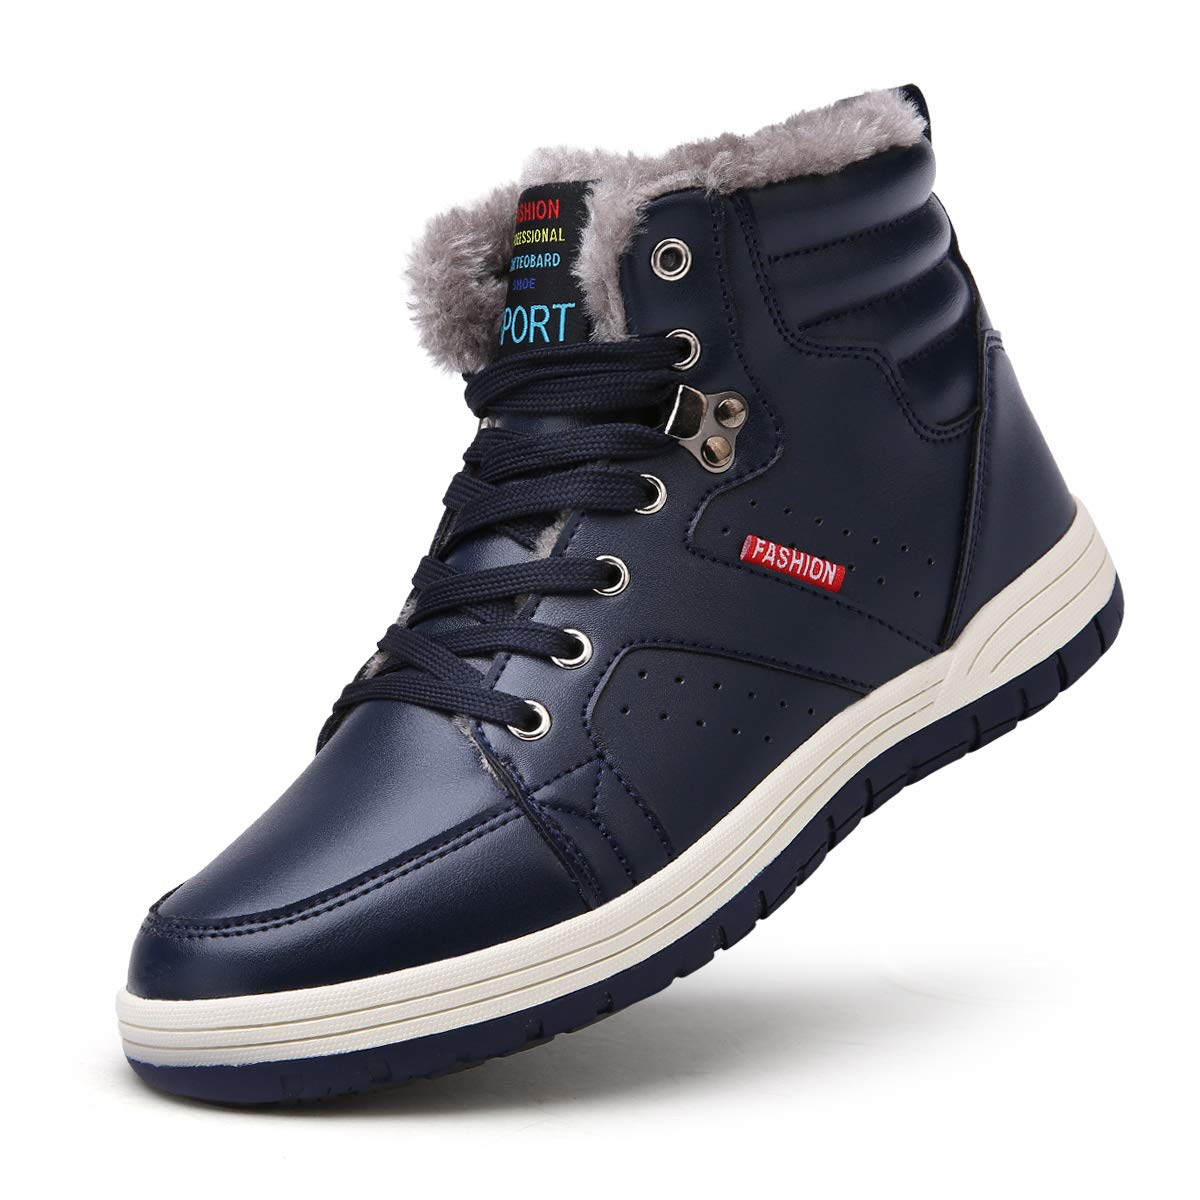 SONLLEIVOO Winter Snow Boots for Men Waterproof Lace up Ankle Sneakers Warm Shoes with Fur Lining